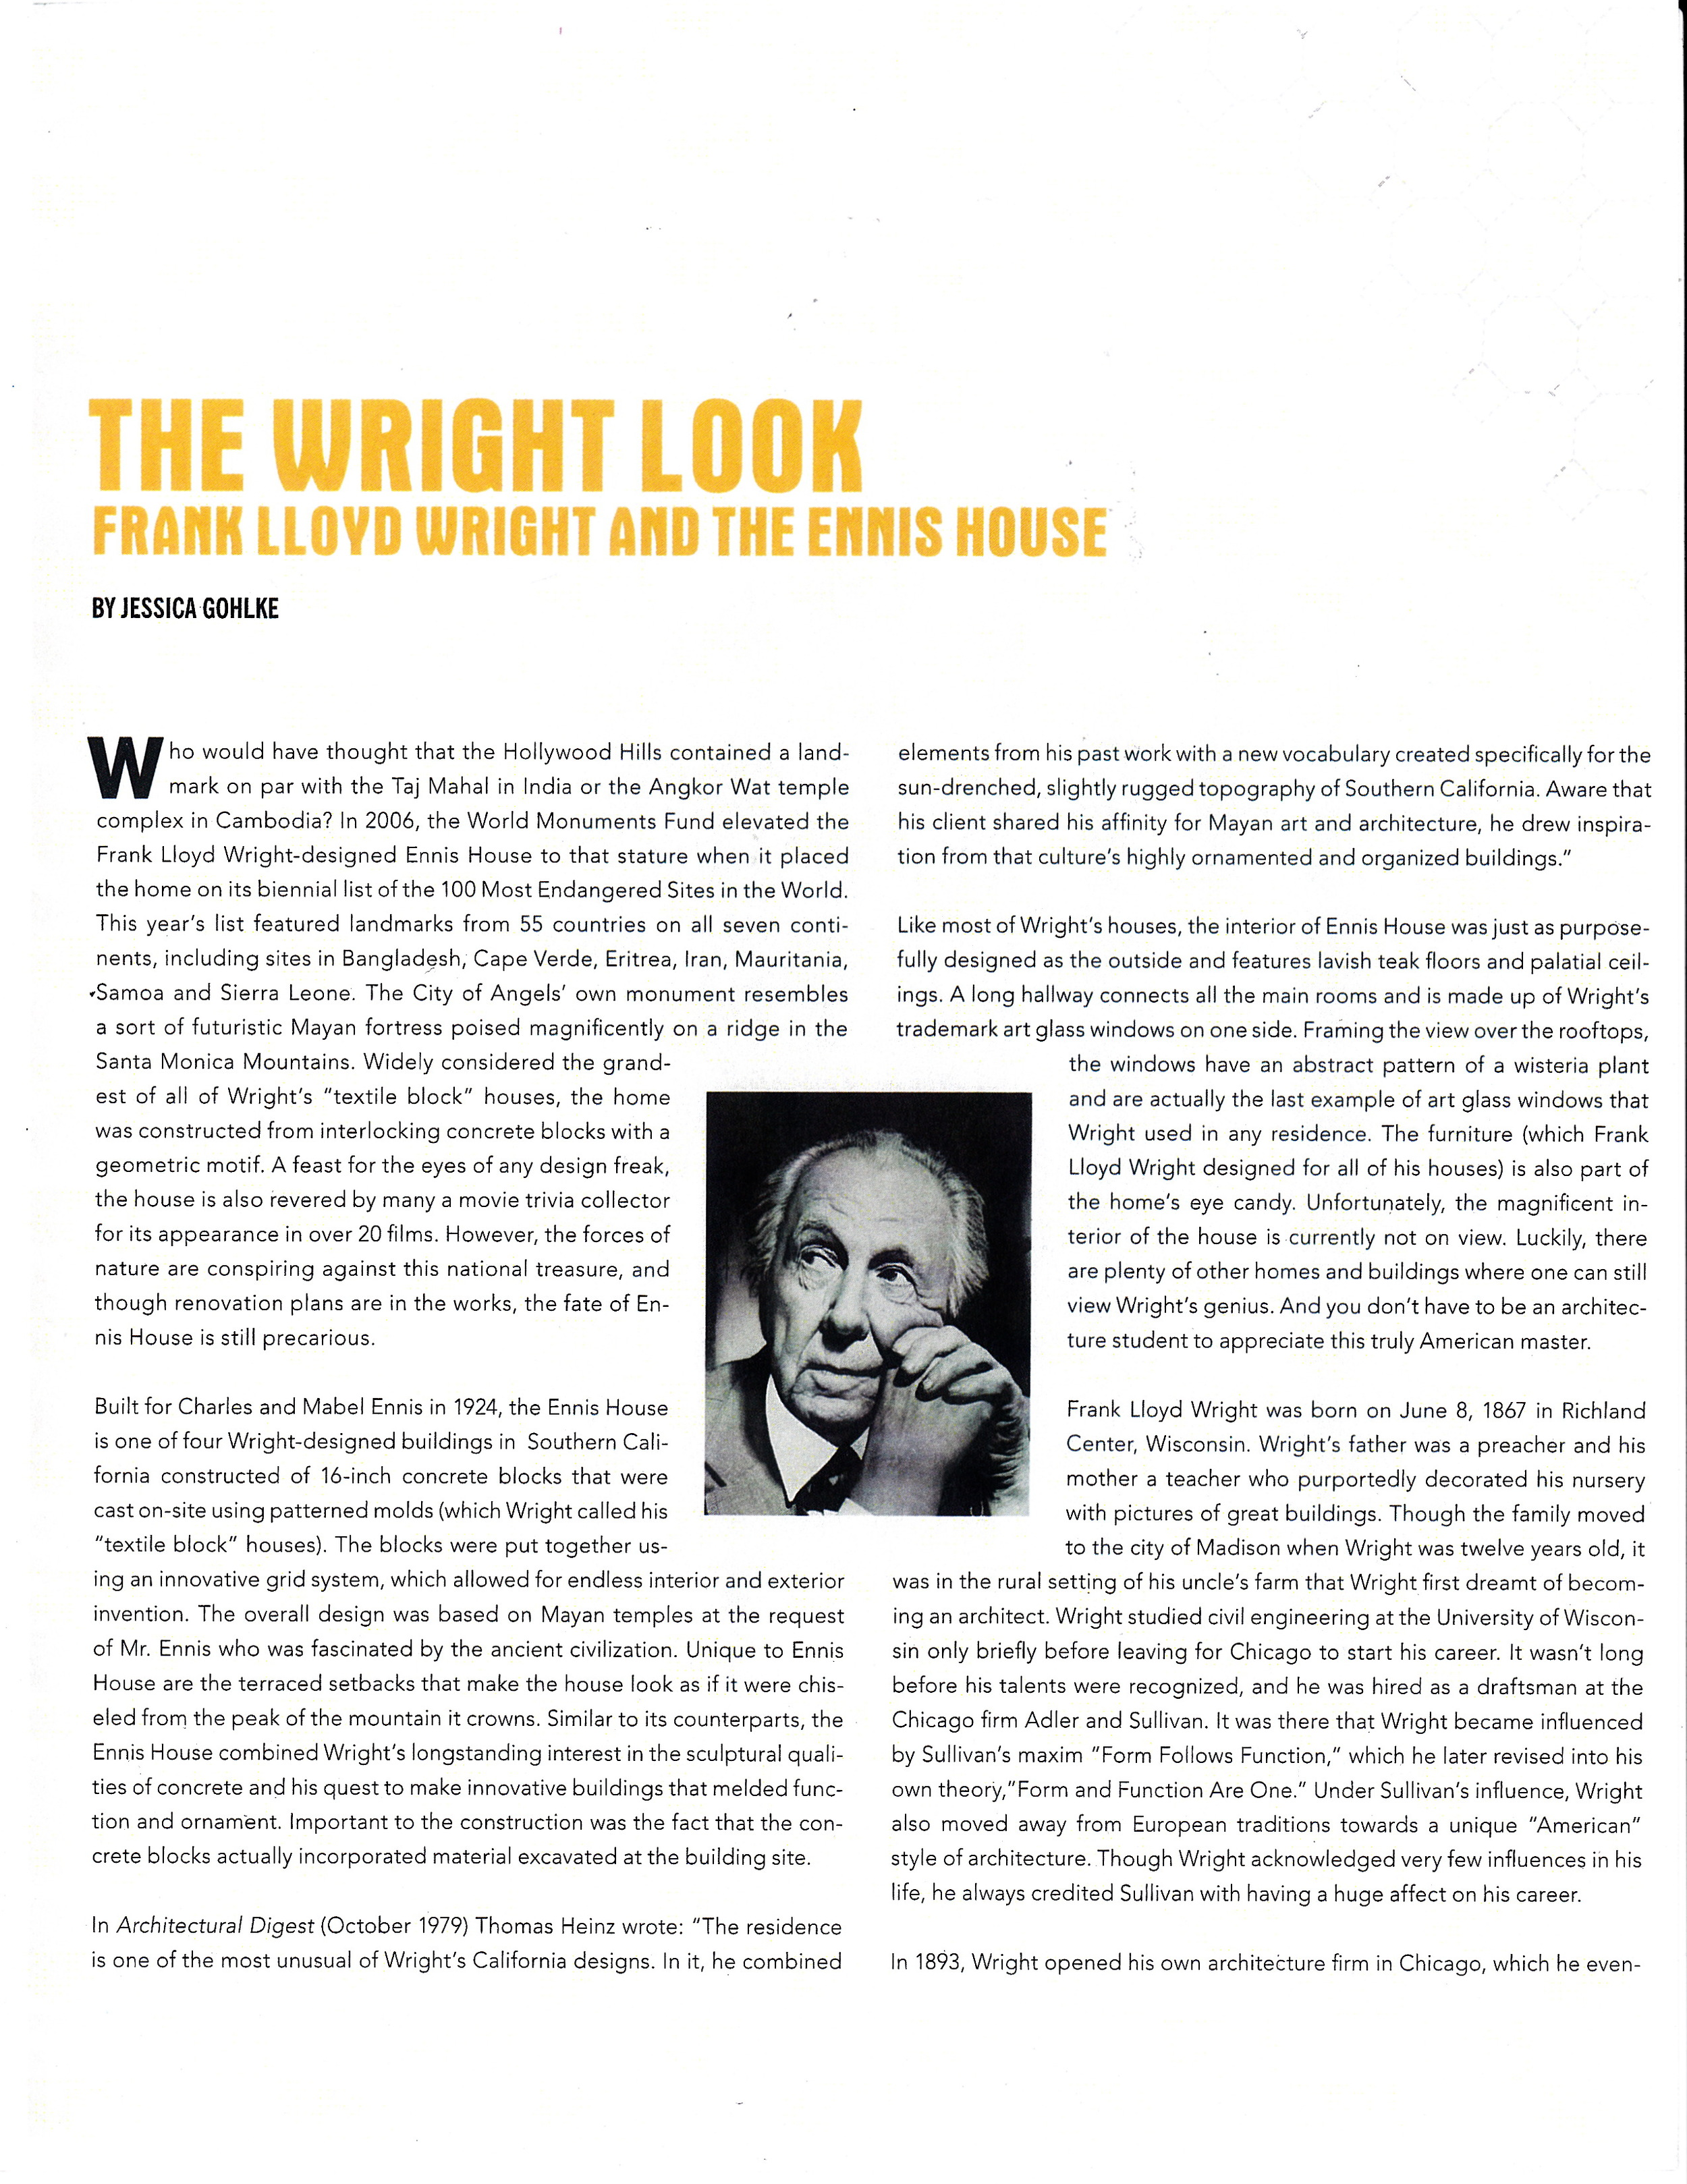 Article-Wright.1.jpg